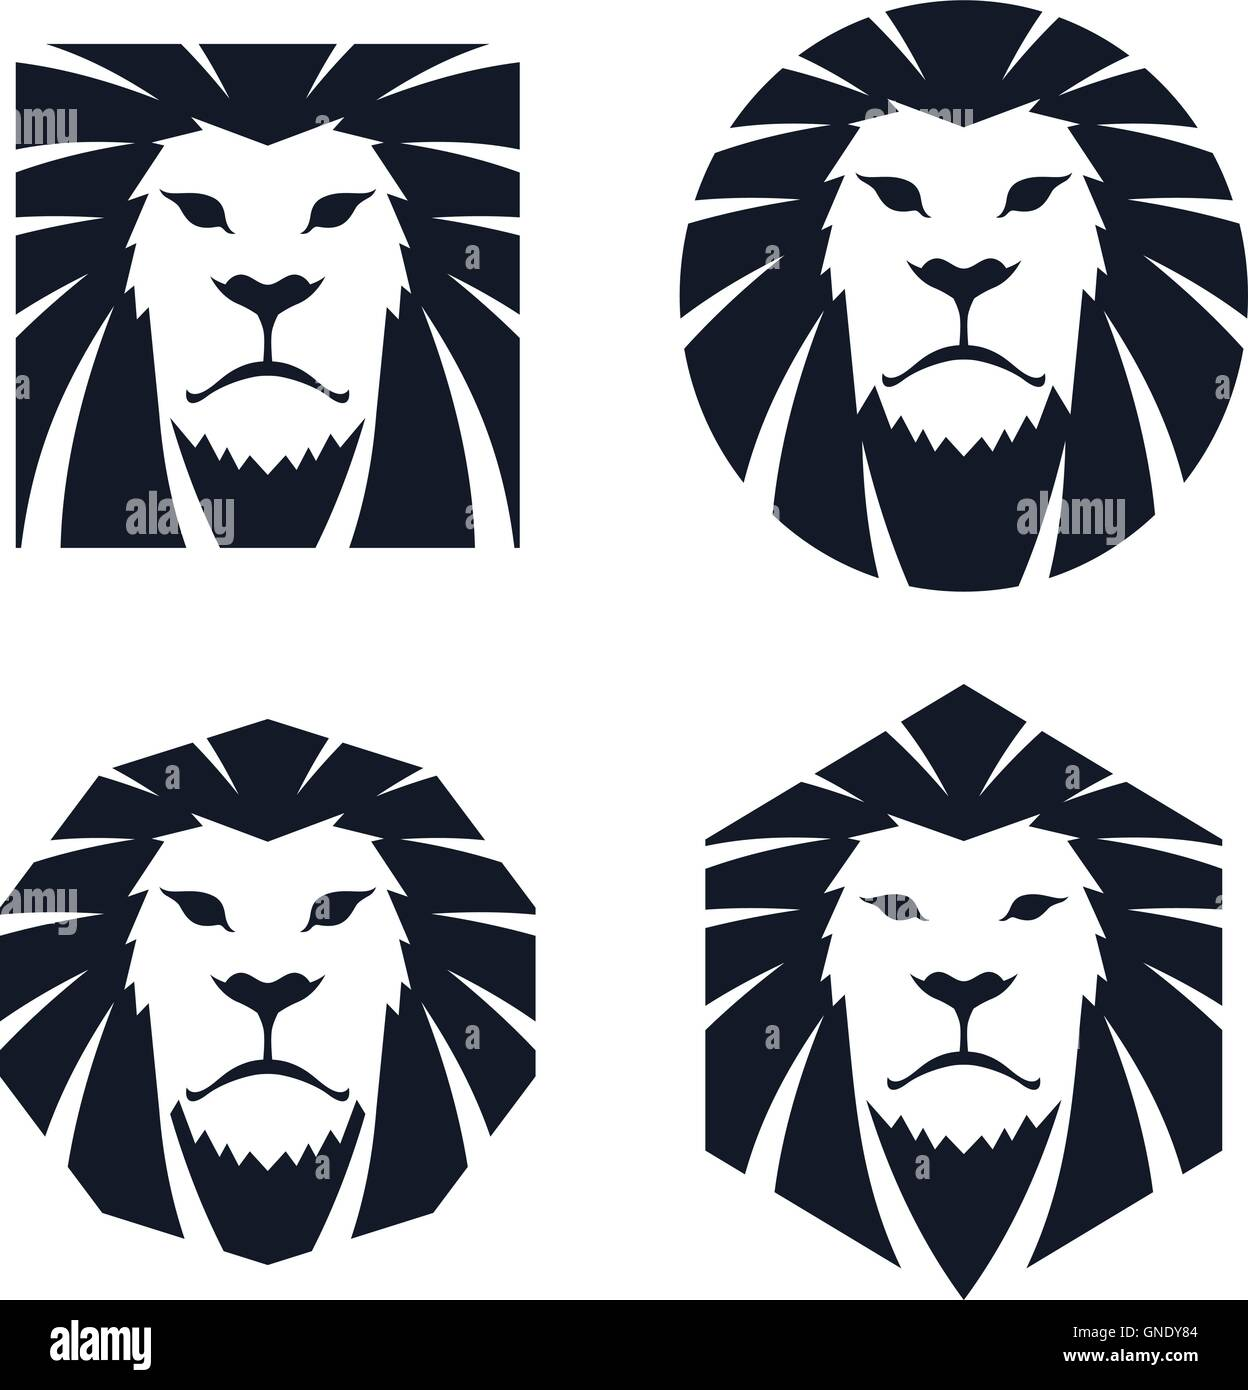 lion head template stock vector art illustration vector image